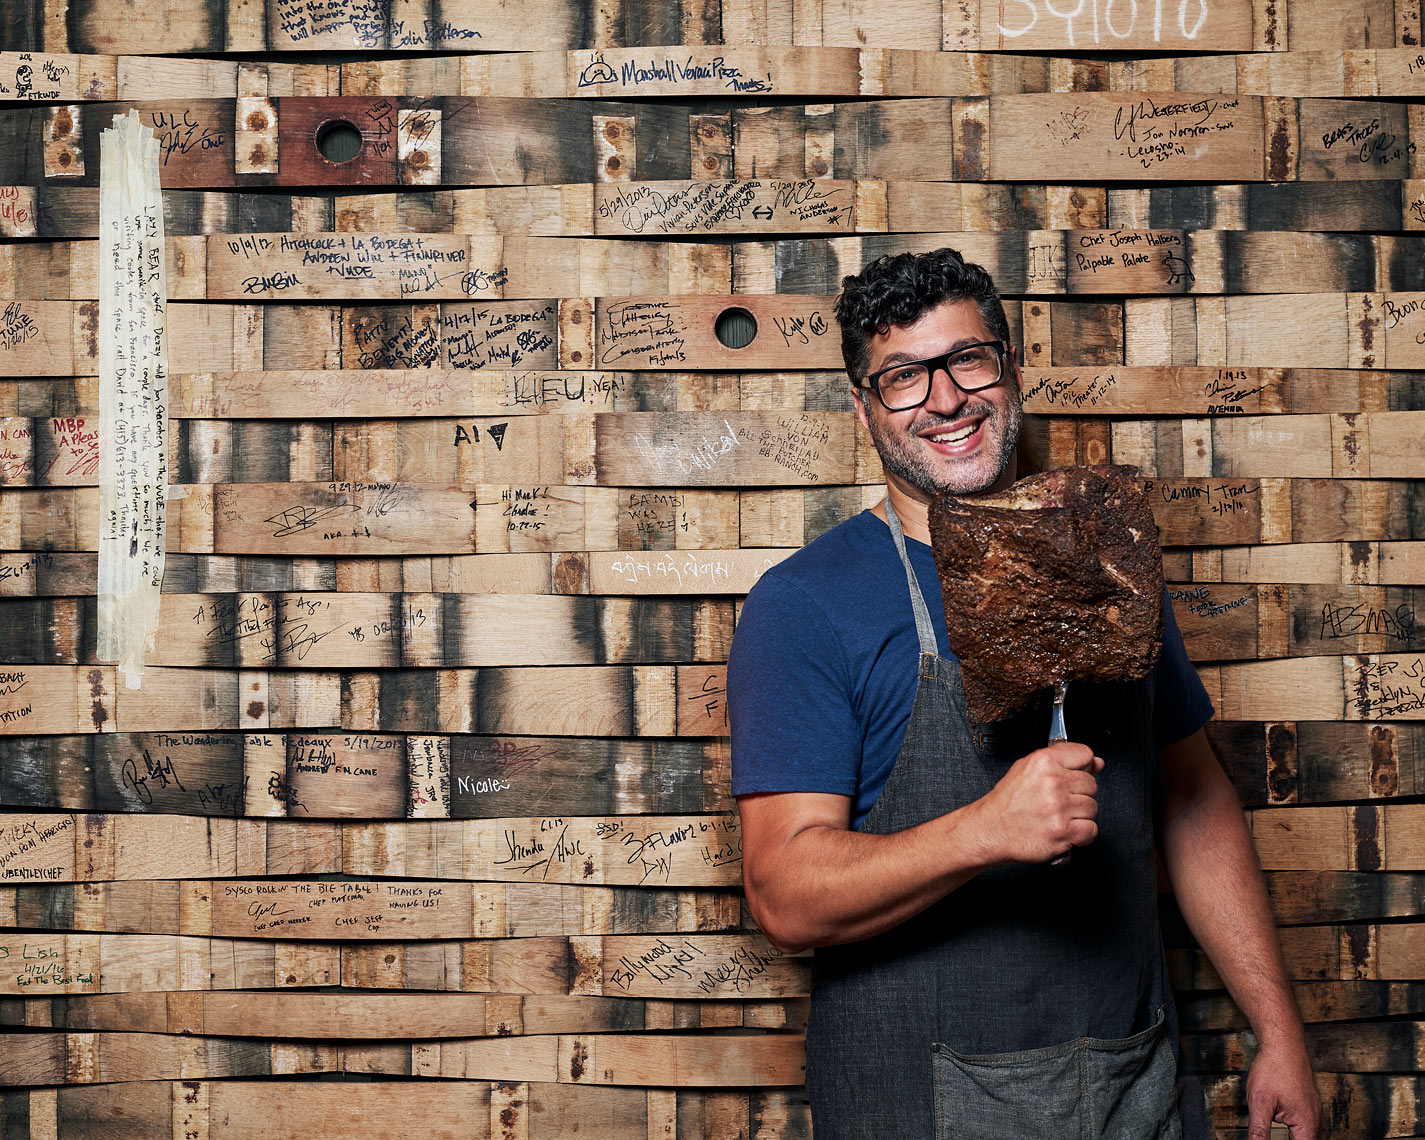 Man poses with pastrami for magazine portrait